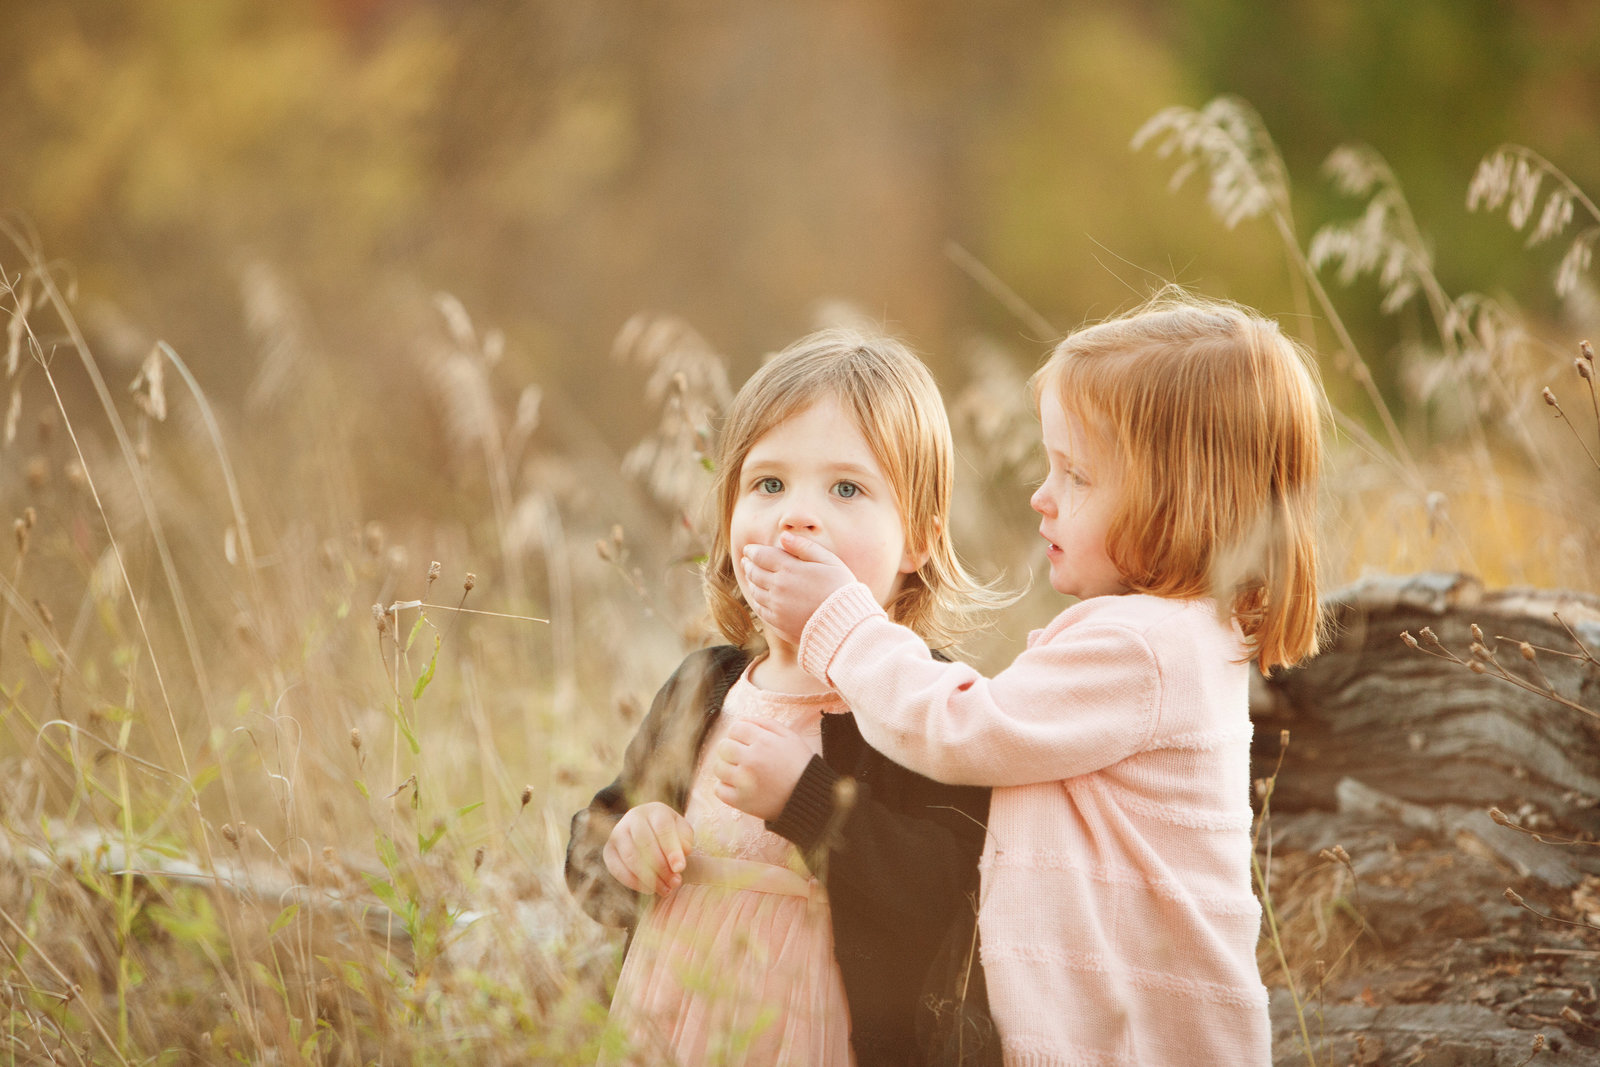 Funny photo of twin toddlers Hudson Valley child photographer Cornwall NY